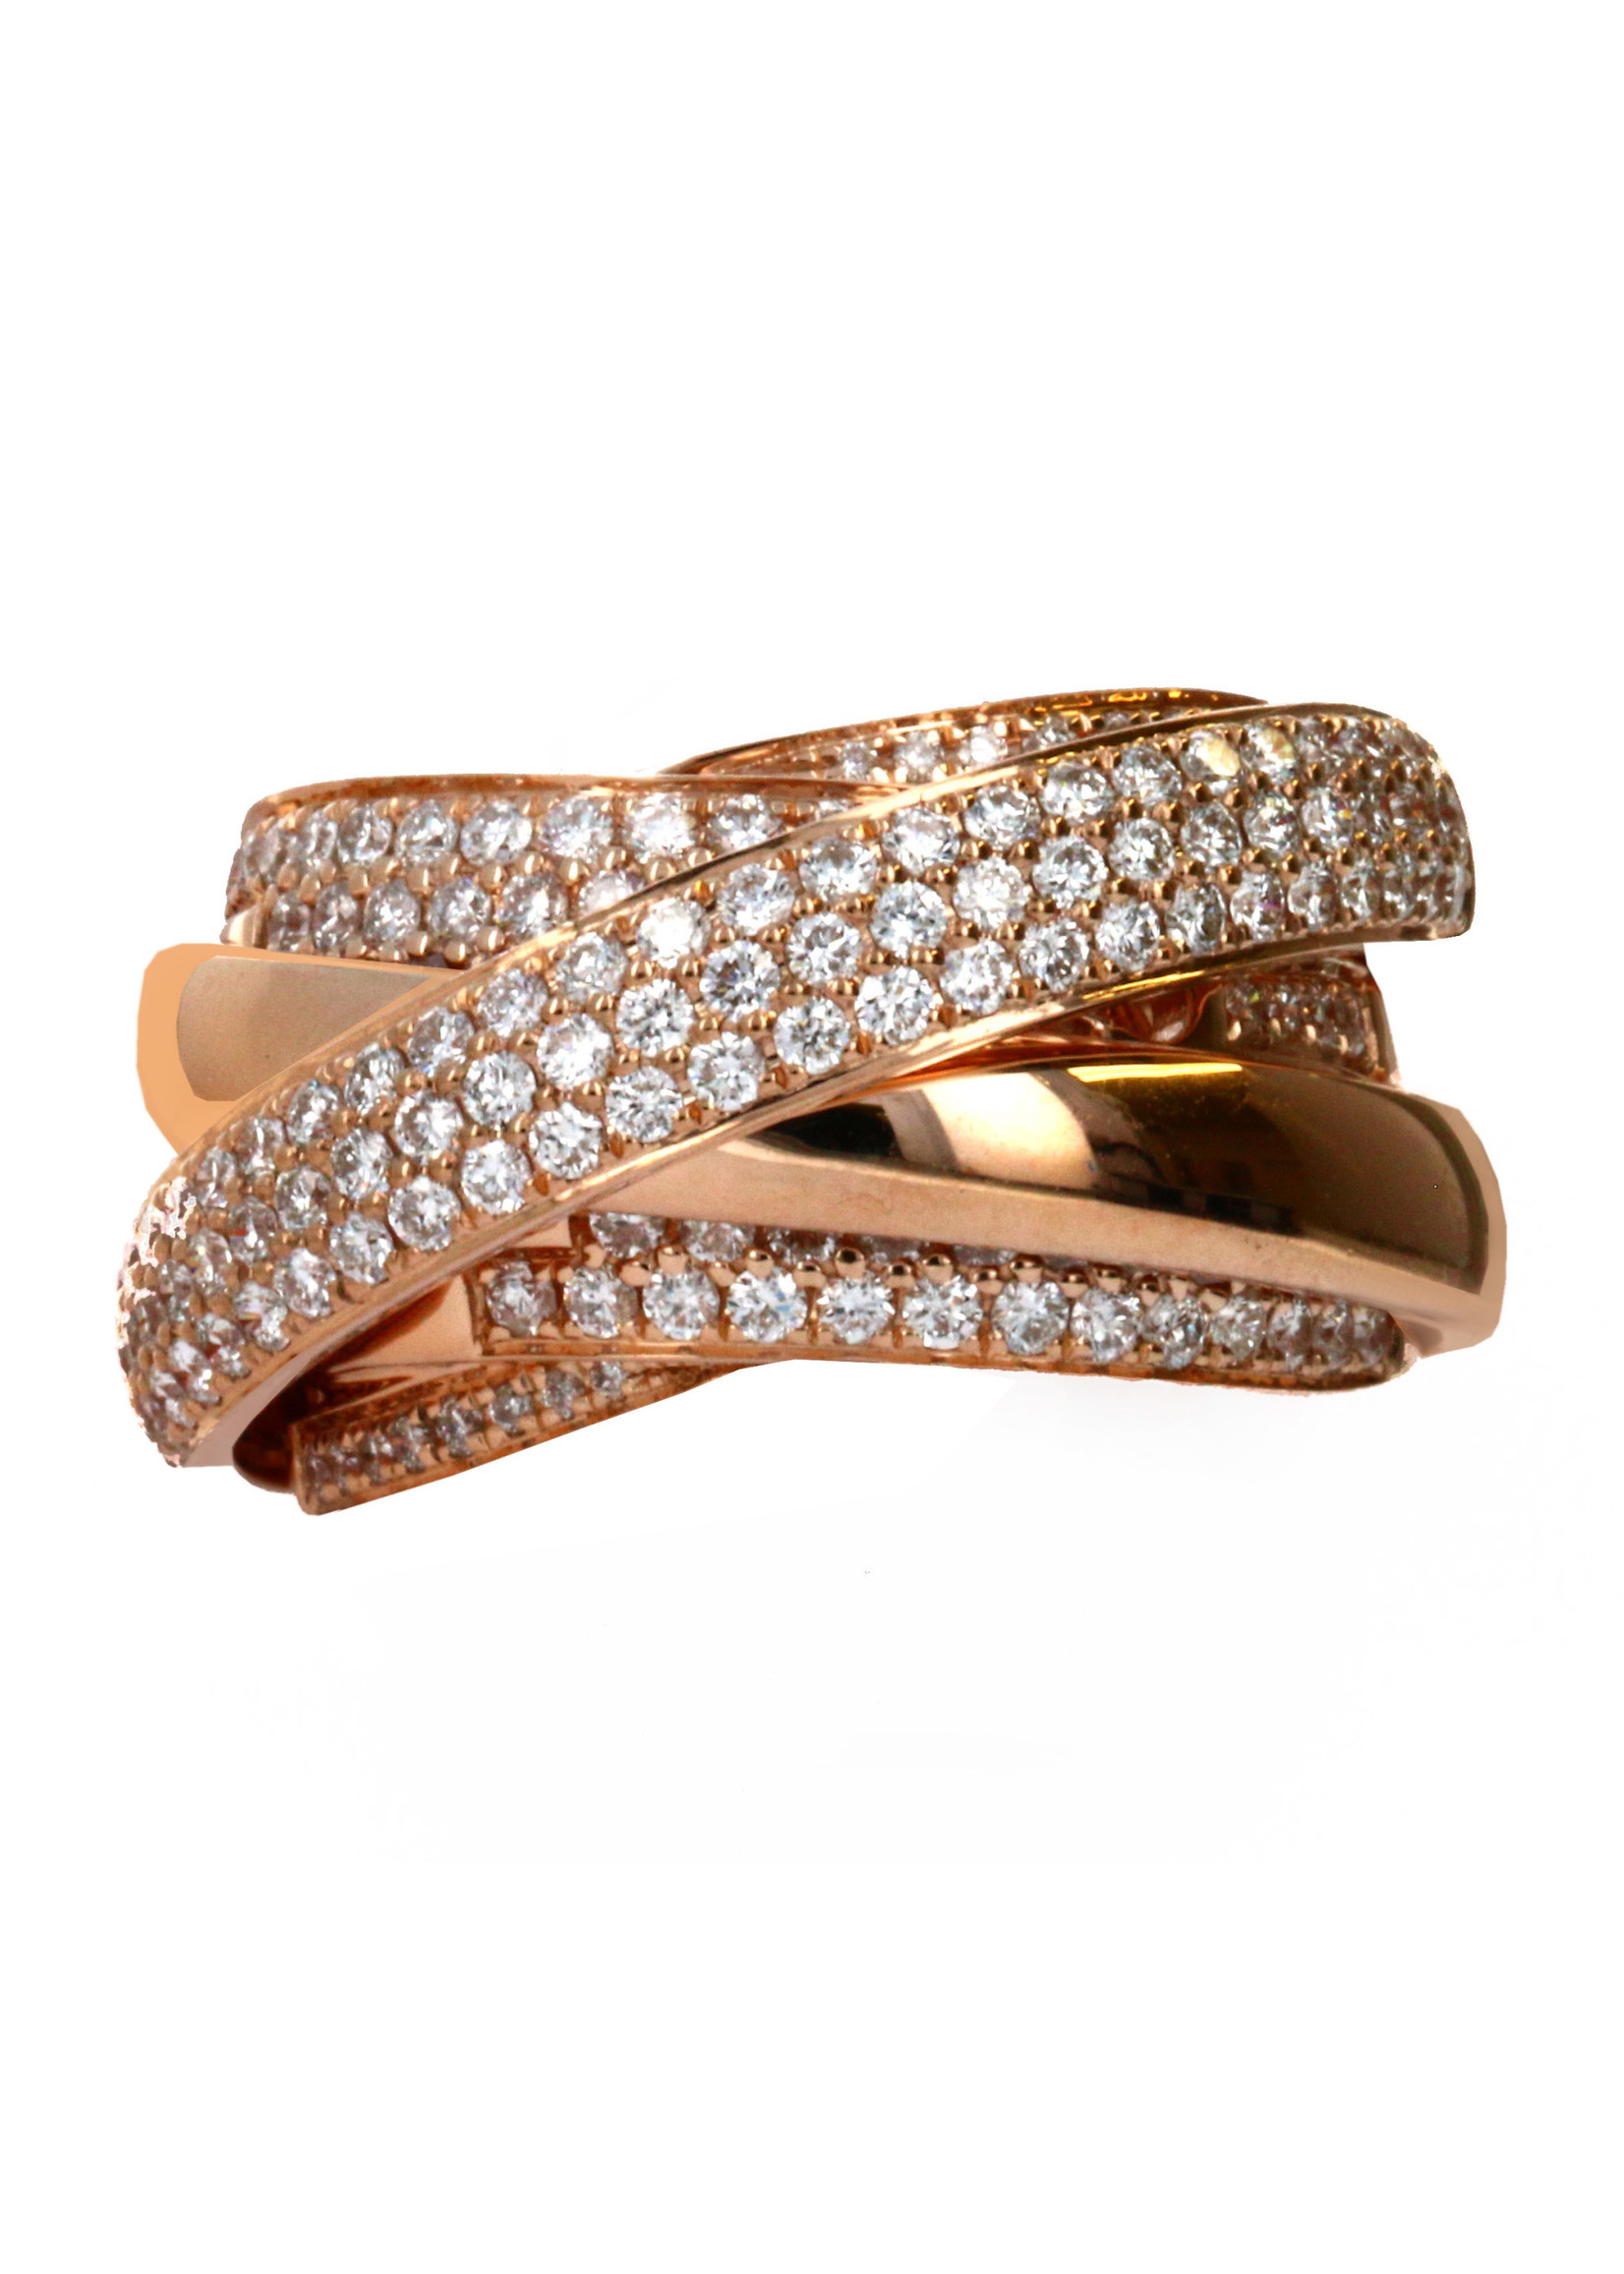 Jewellery ROSE GOLD BRIDE RING WITH DIAMONDS